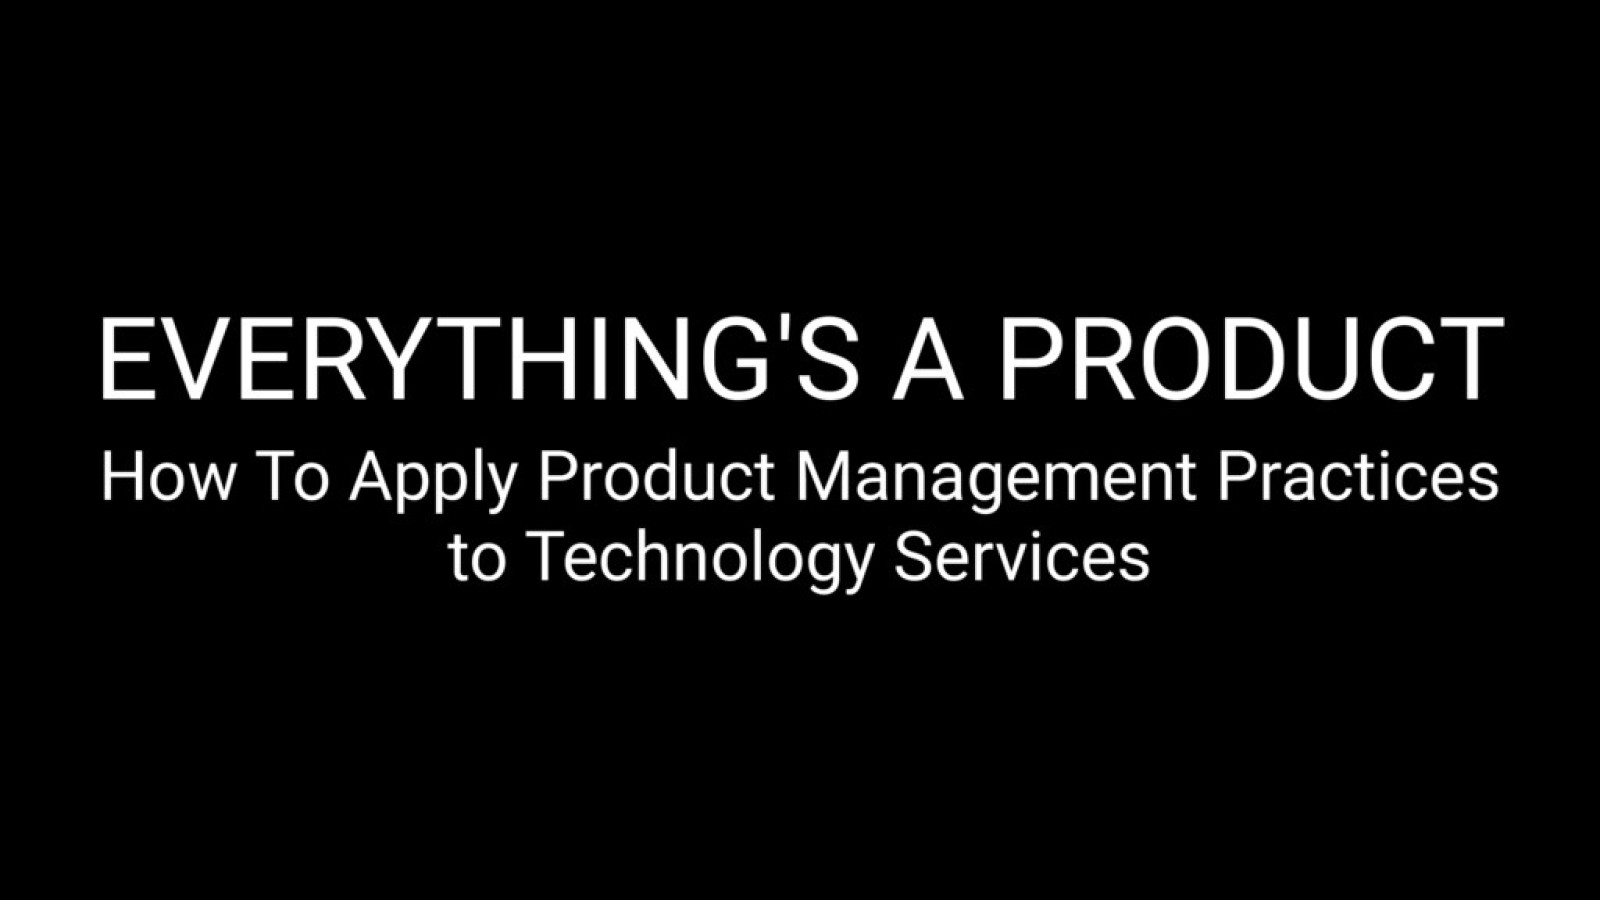 Everything Is A Product - How To Apply Product Management Practices to Technology Services